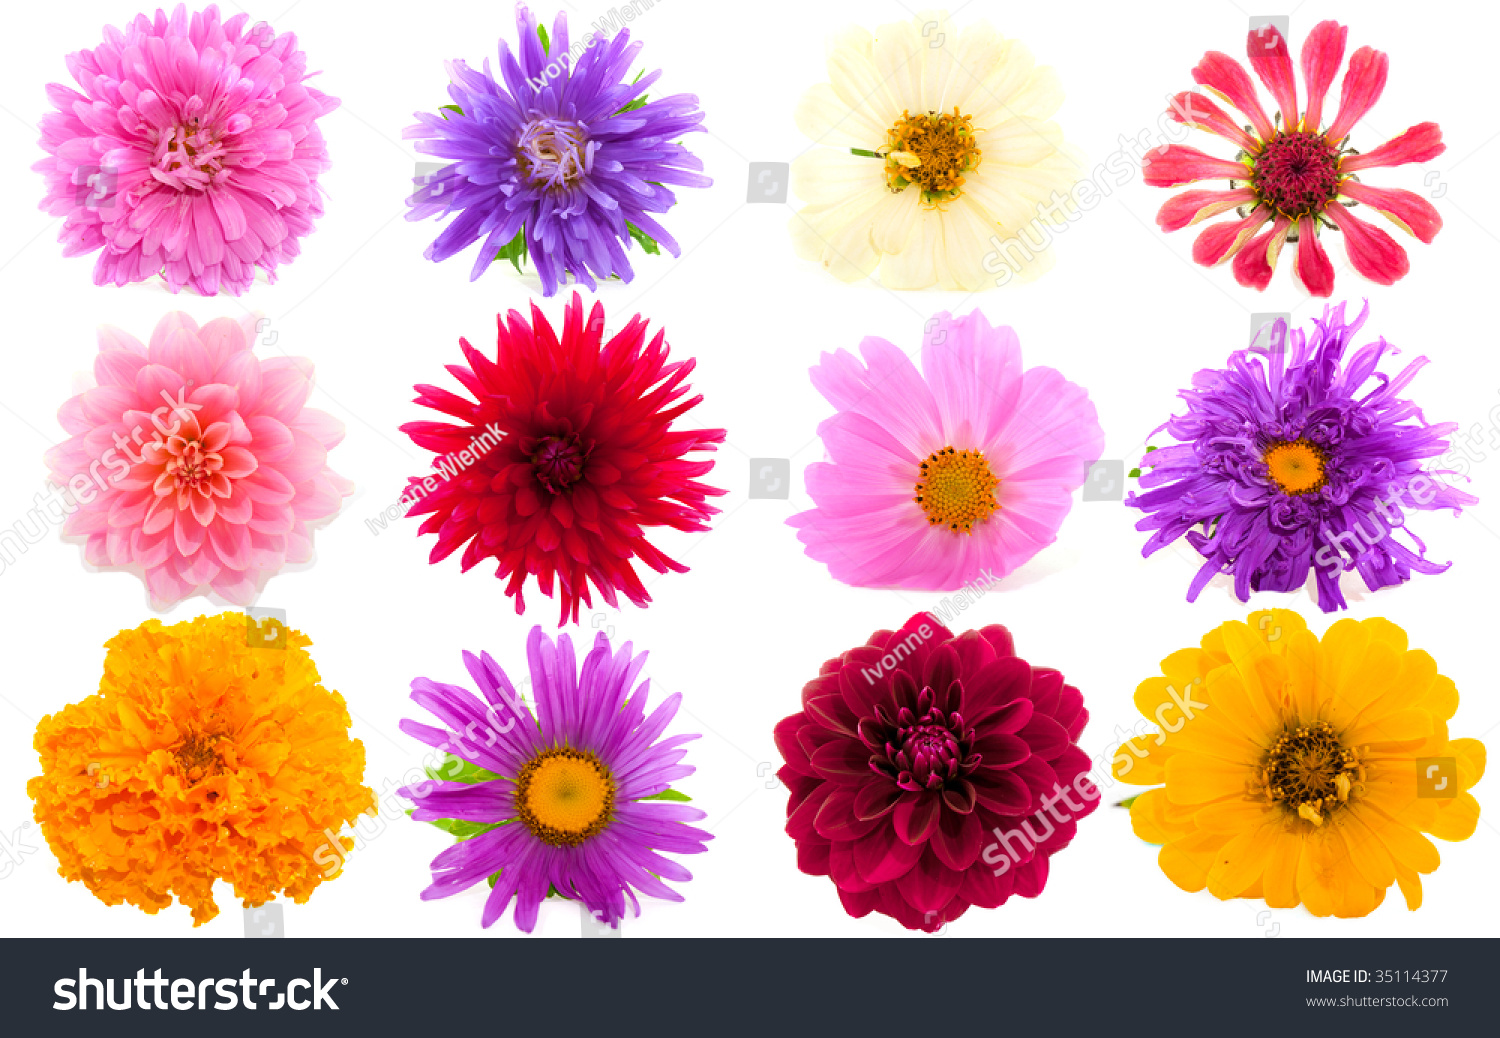 Garden flowers in many different colors isolated over for What makes flowers different colors